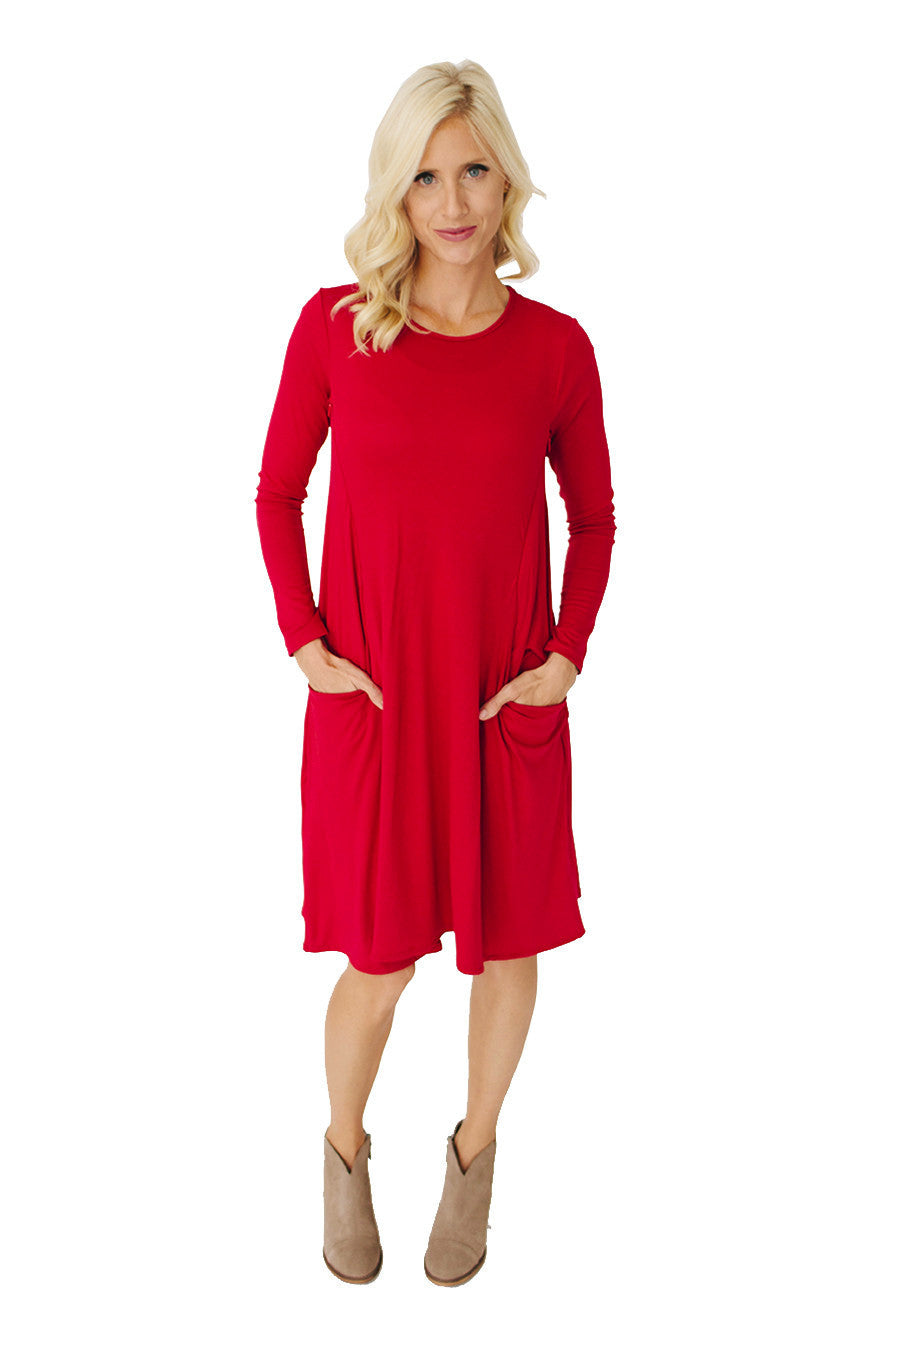 Long Sleeve Swing Nursing Dress - Red